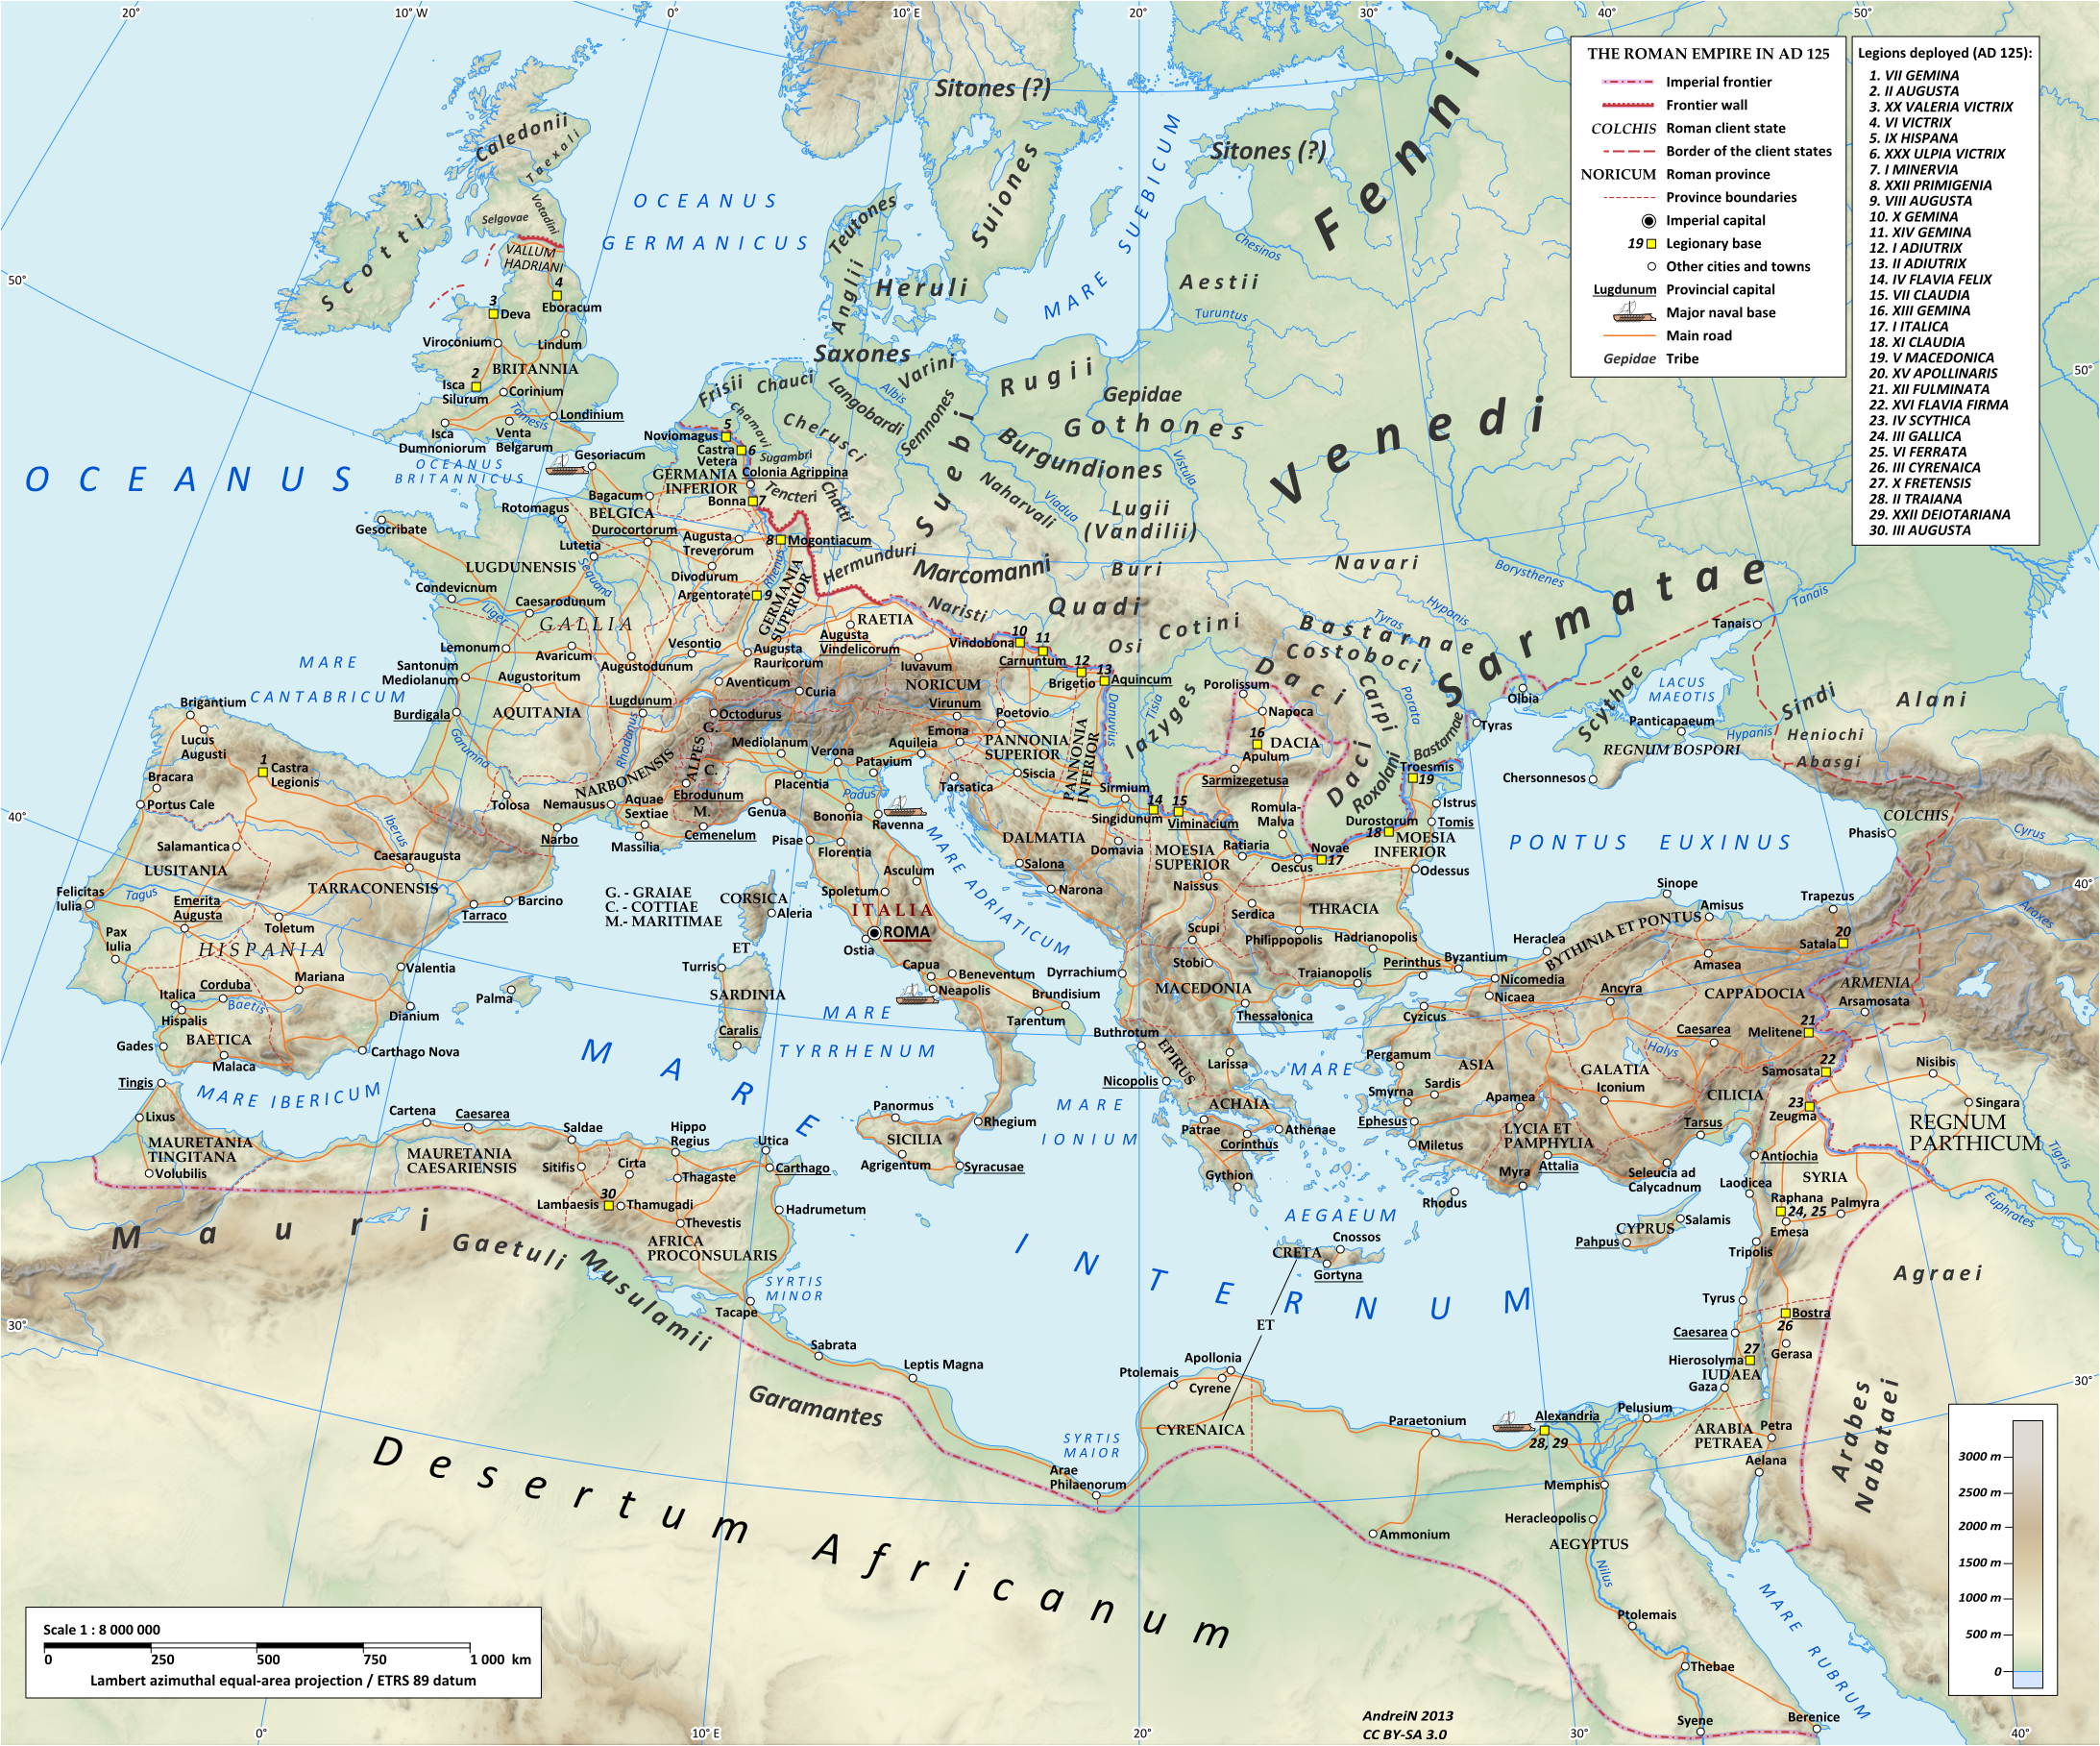 http://upload.wikimedia.org/wikipedia/commons/b/bb/Roman_Empire_125.png